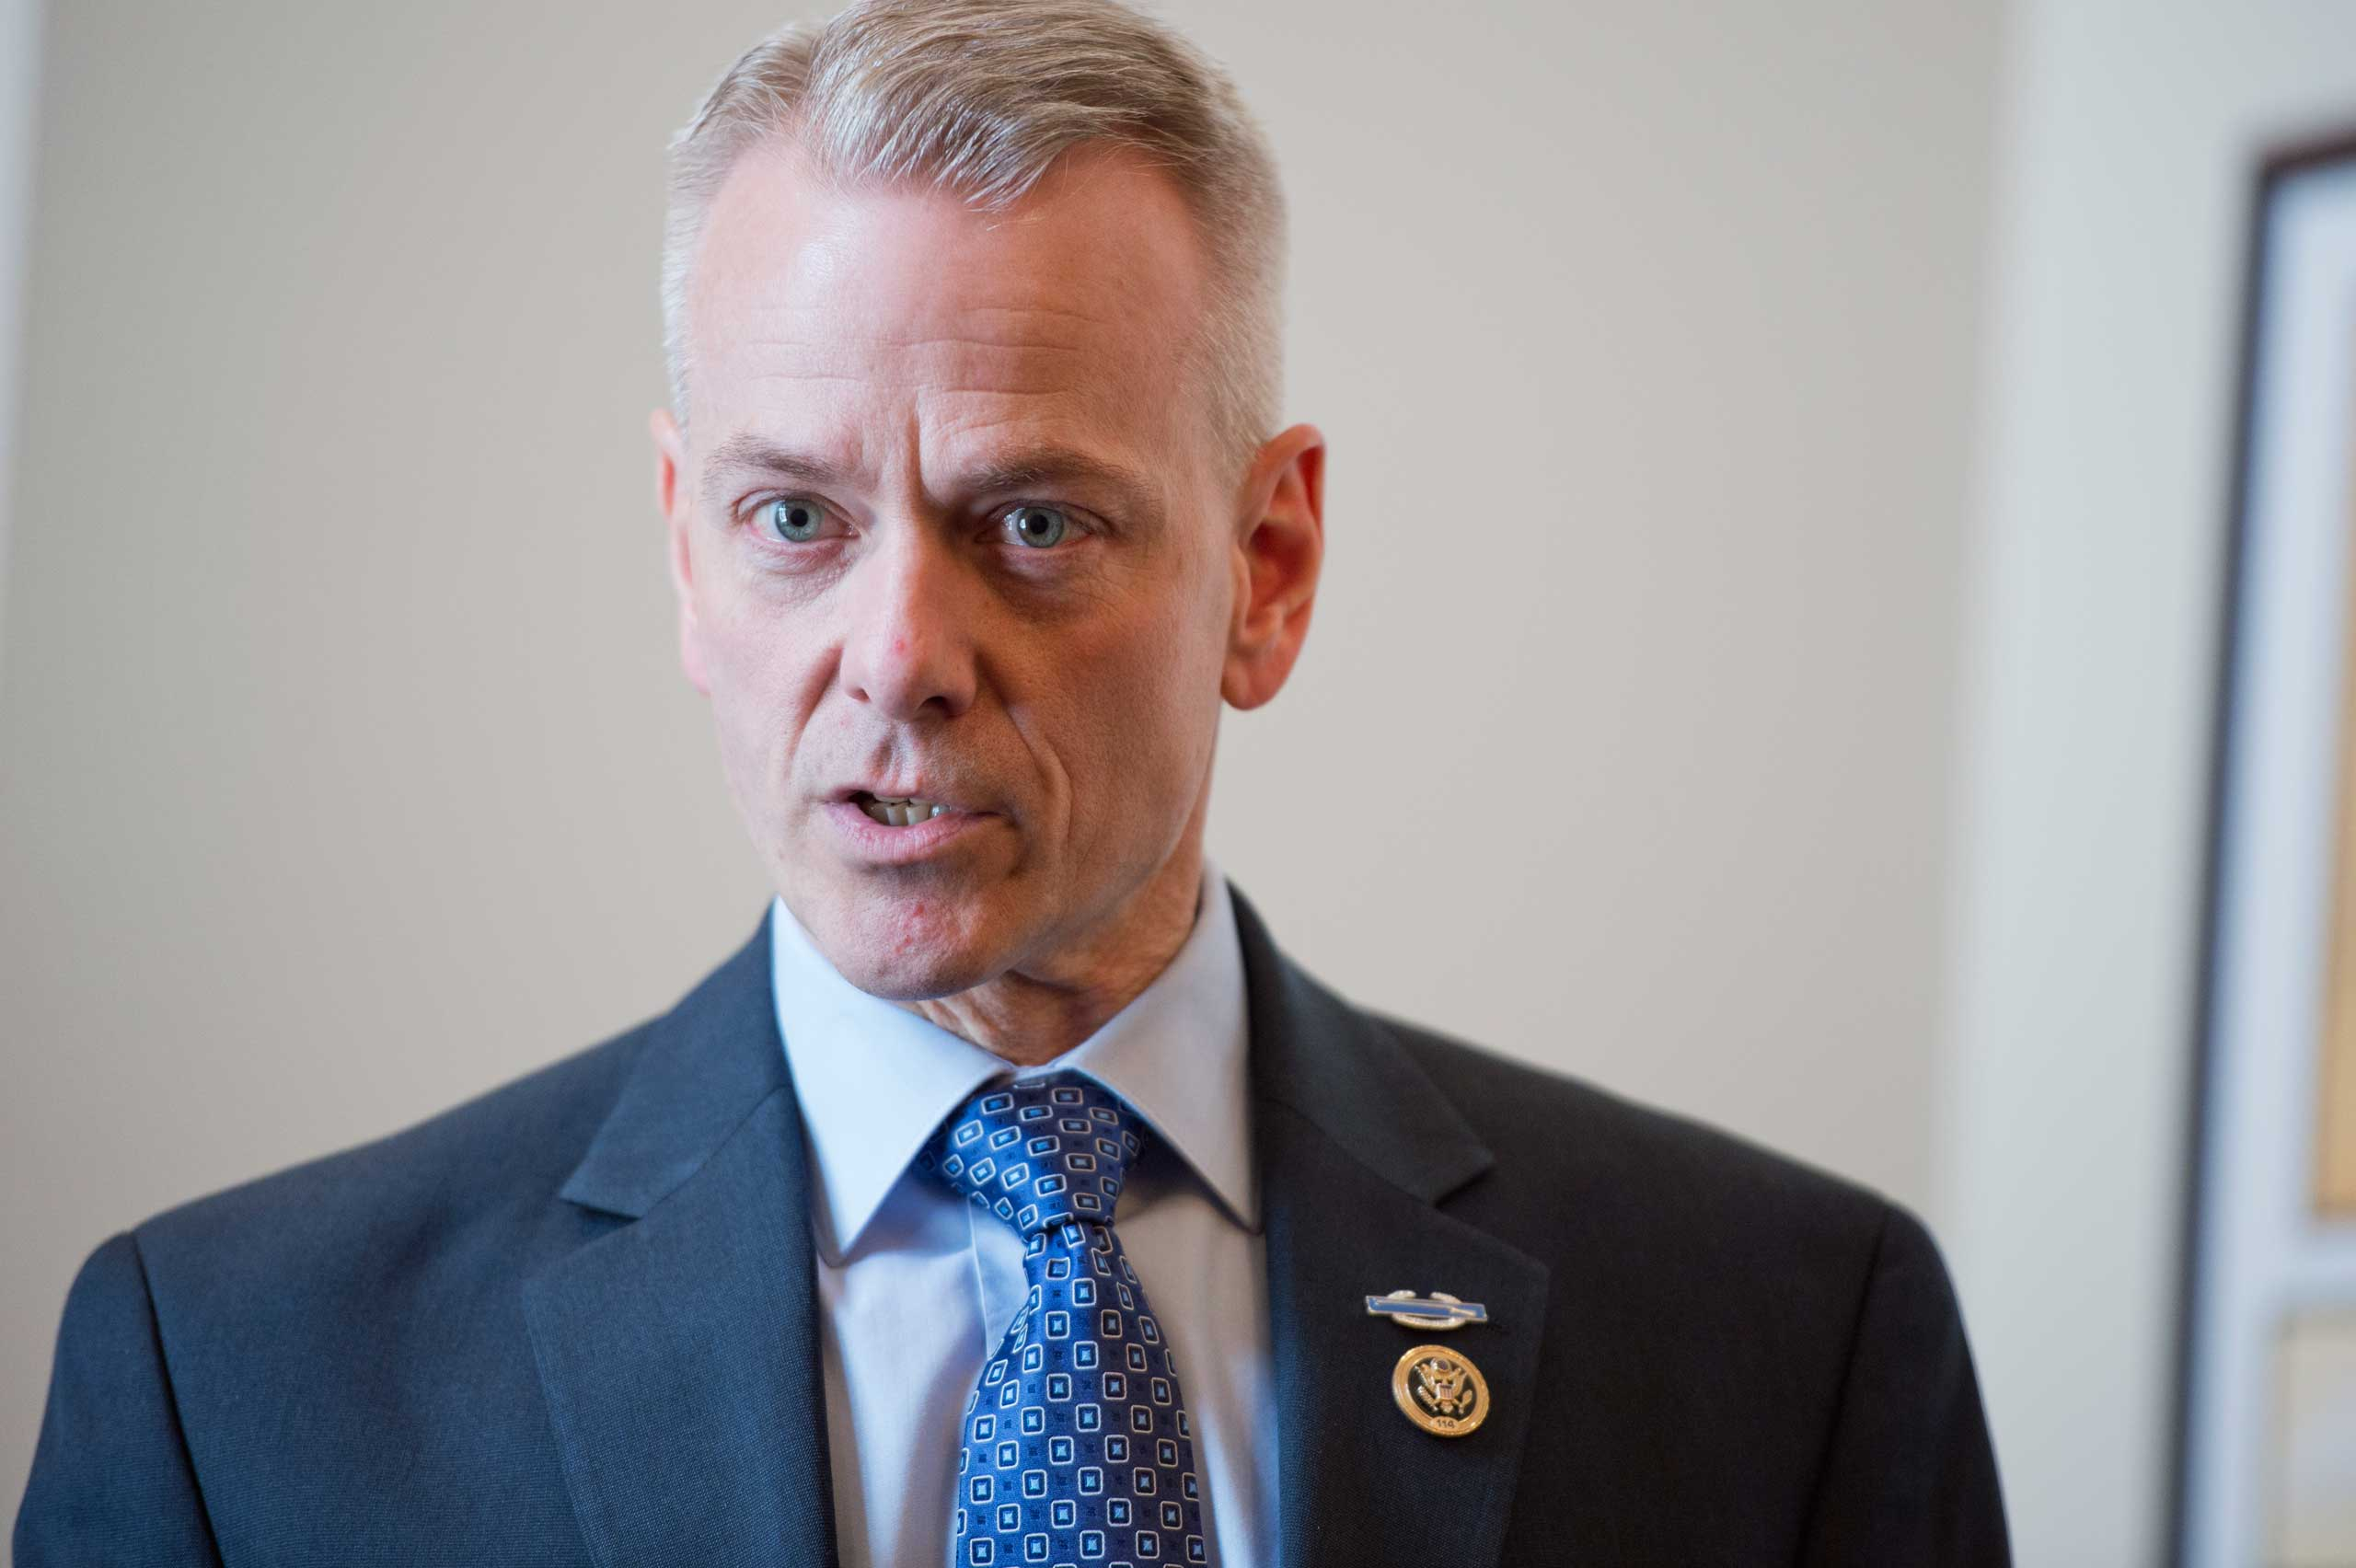 Rep. Steve Russell, R-Okla., speaks during an off the record meeting with reporters and GOP freshmen members in Cannon Building, March 24, 2015.